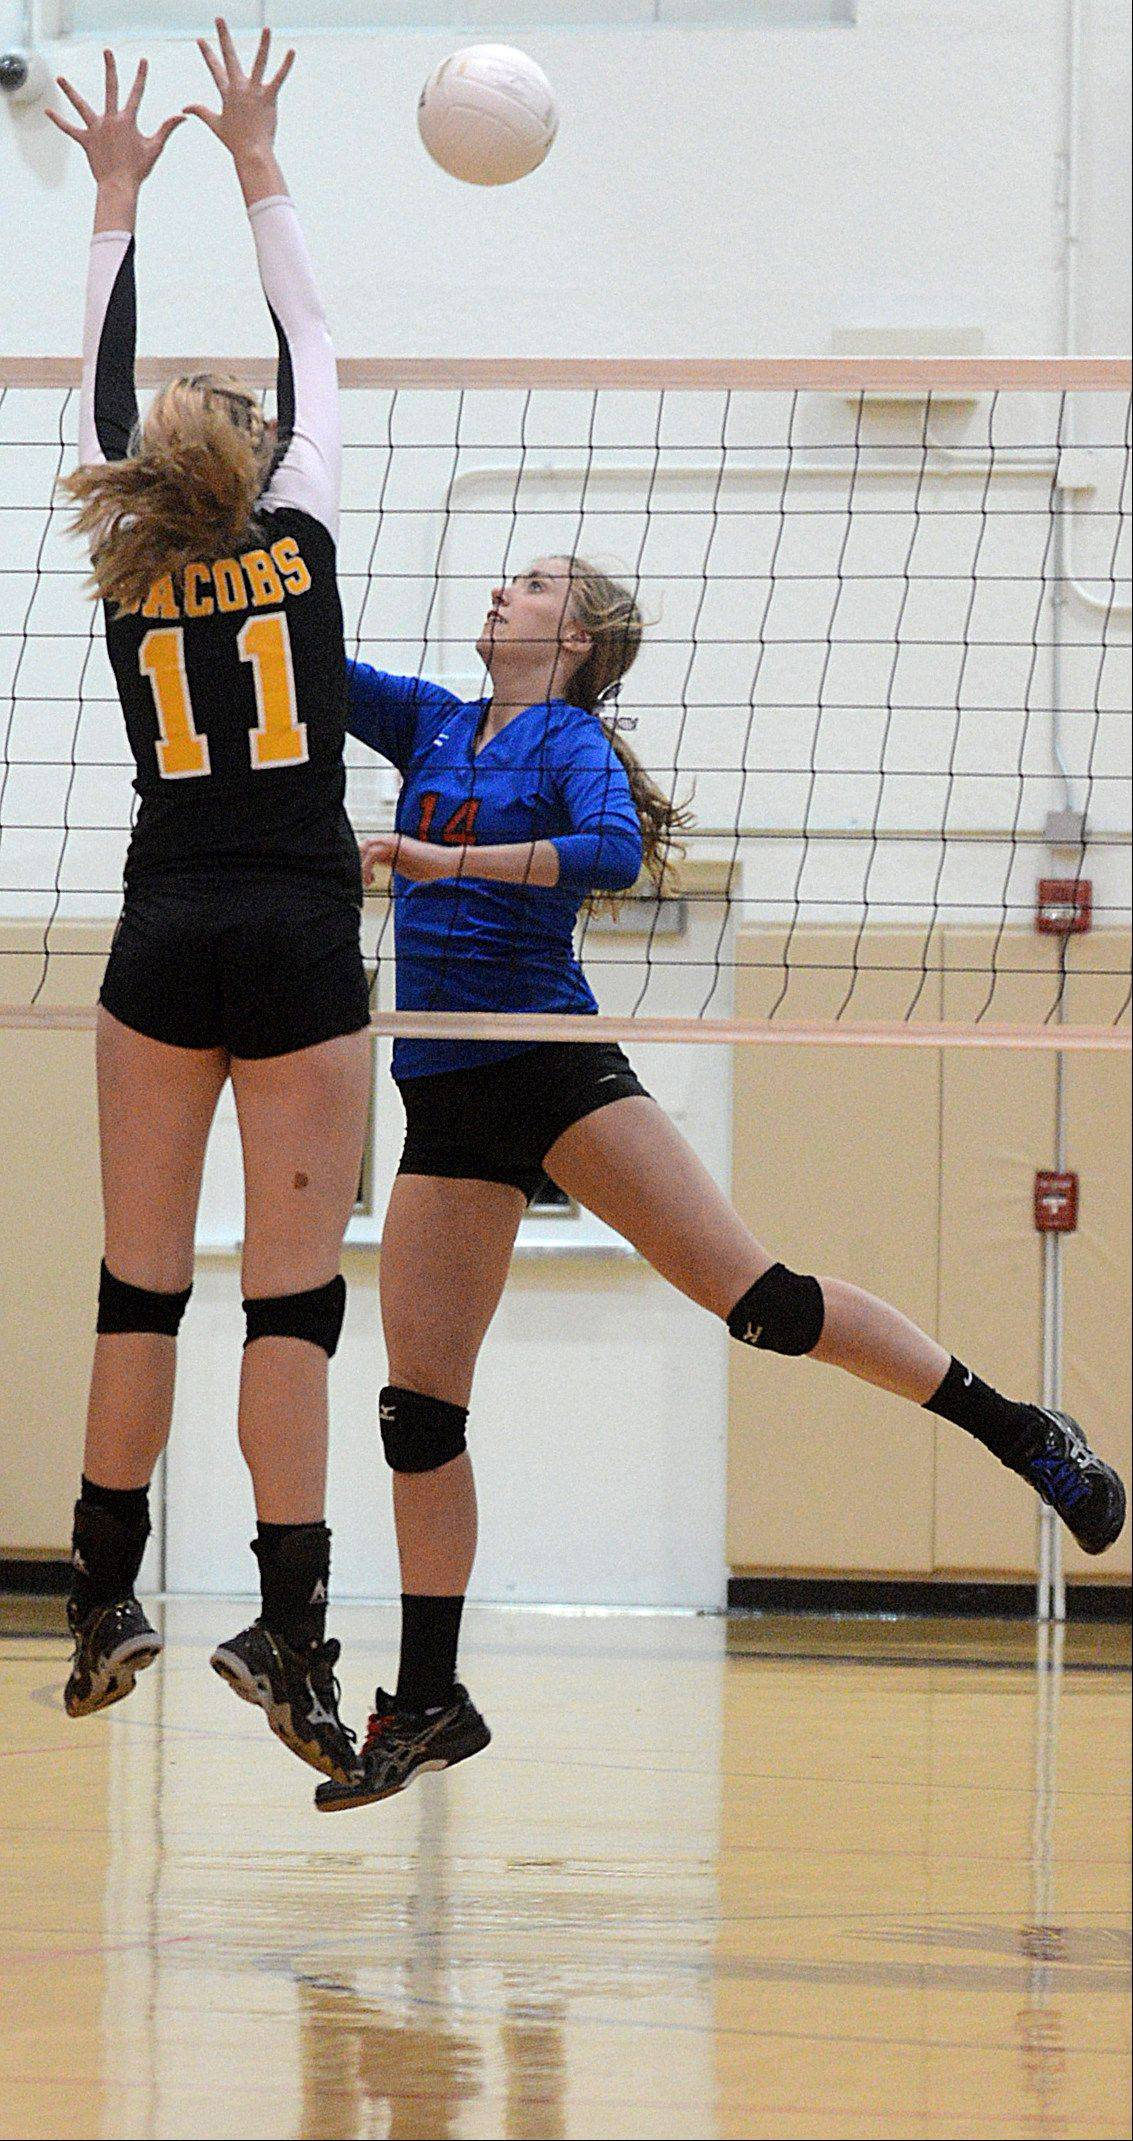 Dundee-Crown's Emily Michalsi, right, and Jacobs' Bridget Wallenberger, left, vie for control of the ball during a varsity volleyball game at Algonquin on Tuesday night.